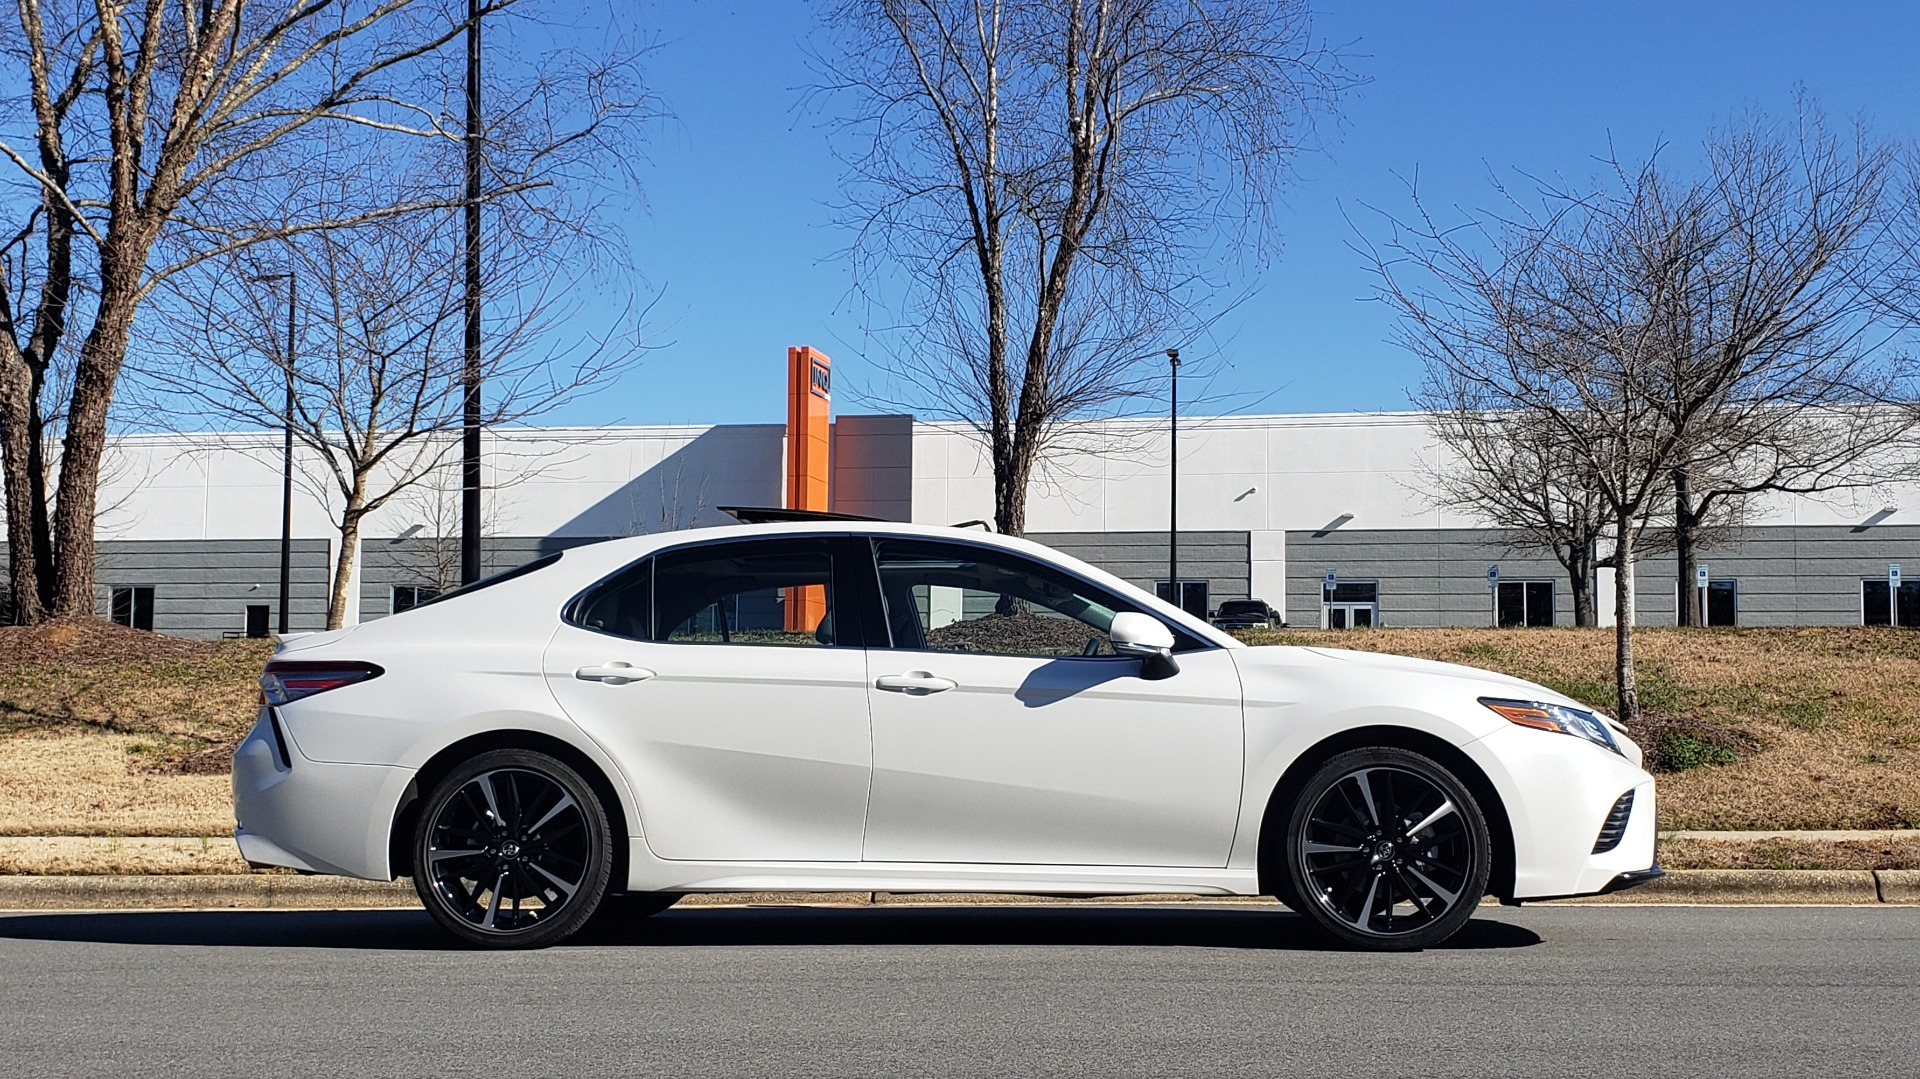 Used 2018 Toyota CAMRY XSE 2.5L SEDAN / 8-SPD AUTO / PANO-ROOF / 19IN WHEELS for sale $22,995 at Formula Imports in Charlotte NC 28227 6